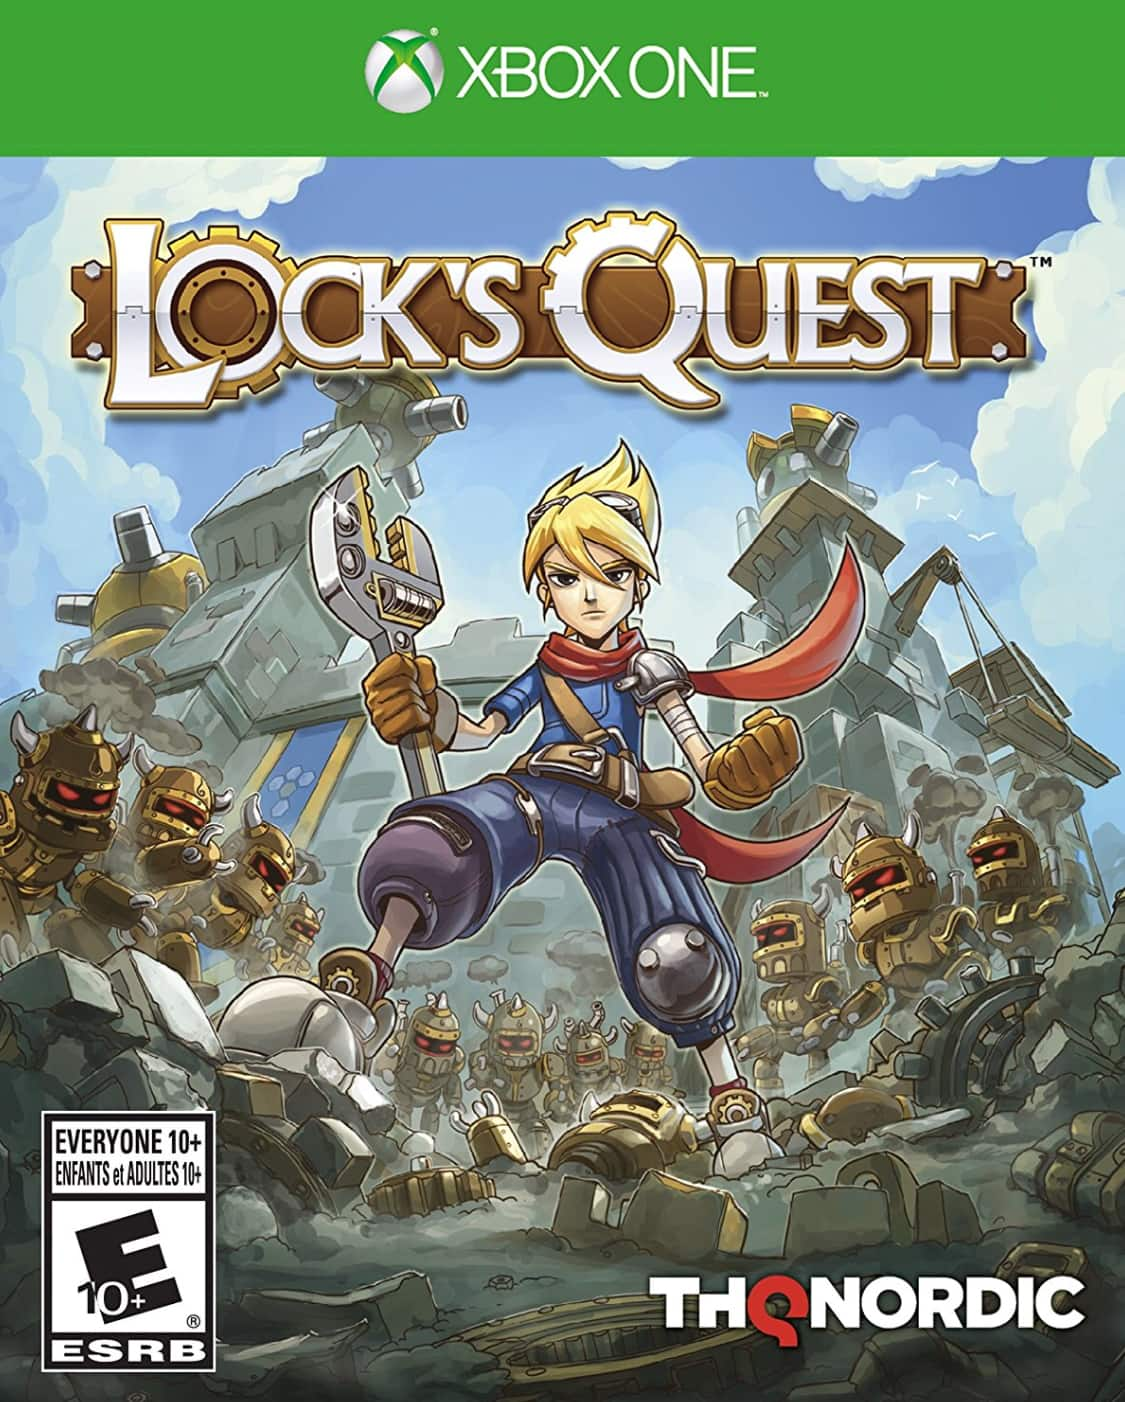 Amazon: $10.49 Lock's Quest - Xbox One Physical Copy